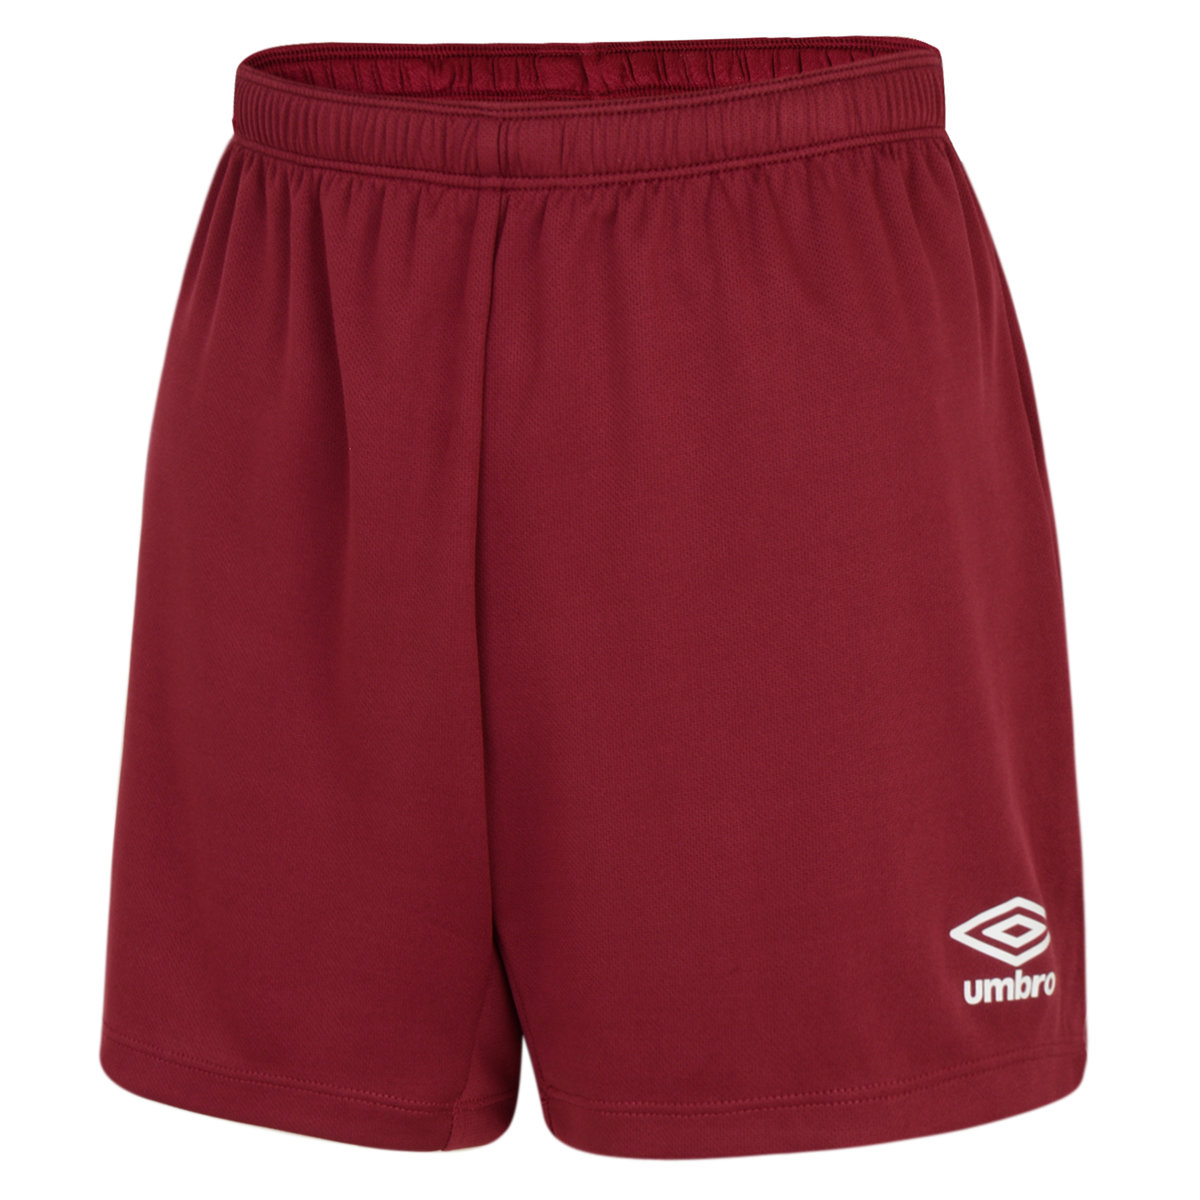 WOMEN'S CLUB SHORT